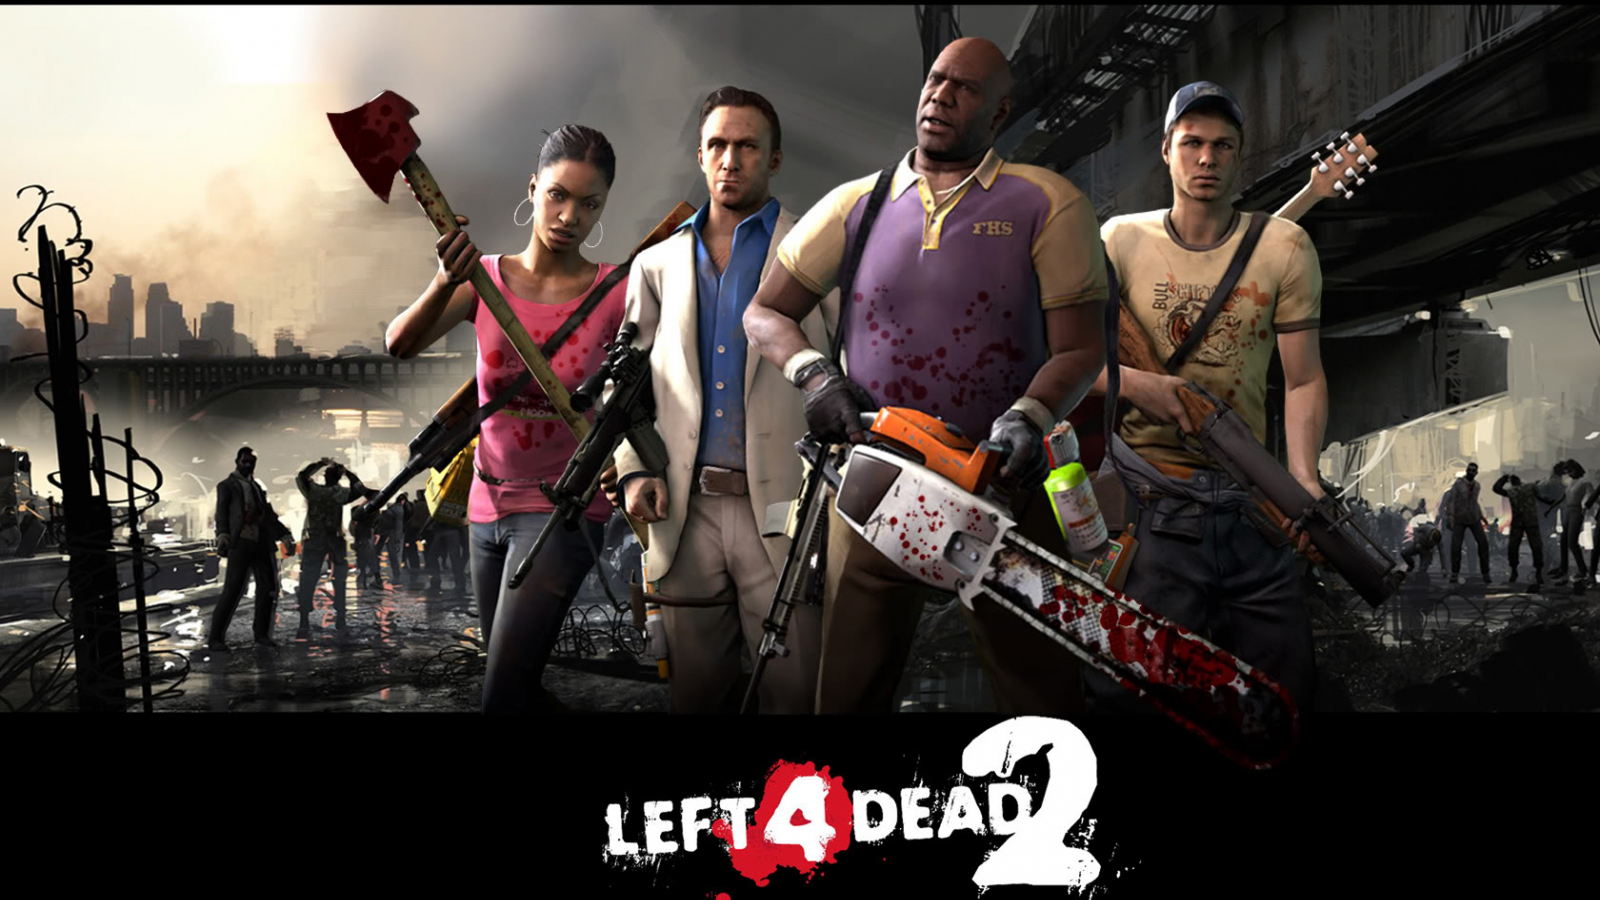 Free Download Pics Photos Left 4 Dead 2 L4d2 Wallpaper 1680x1050